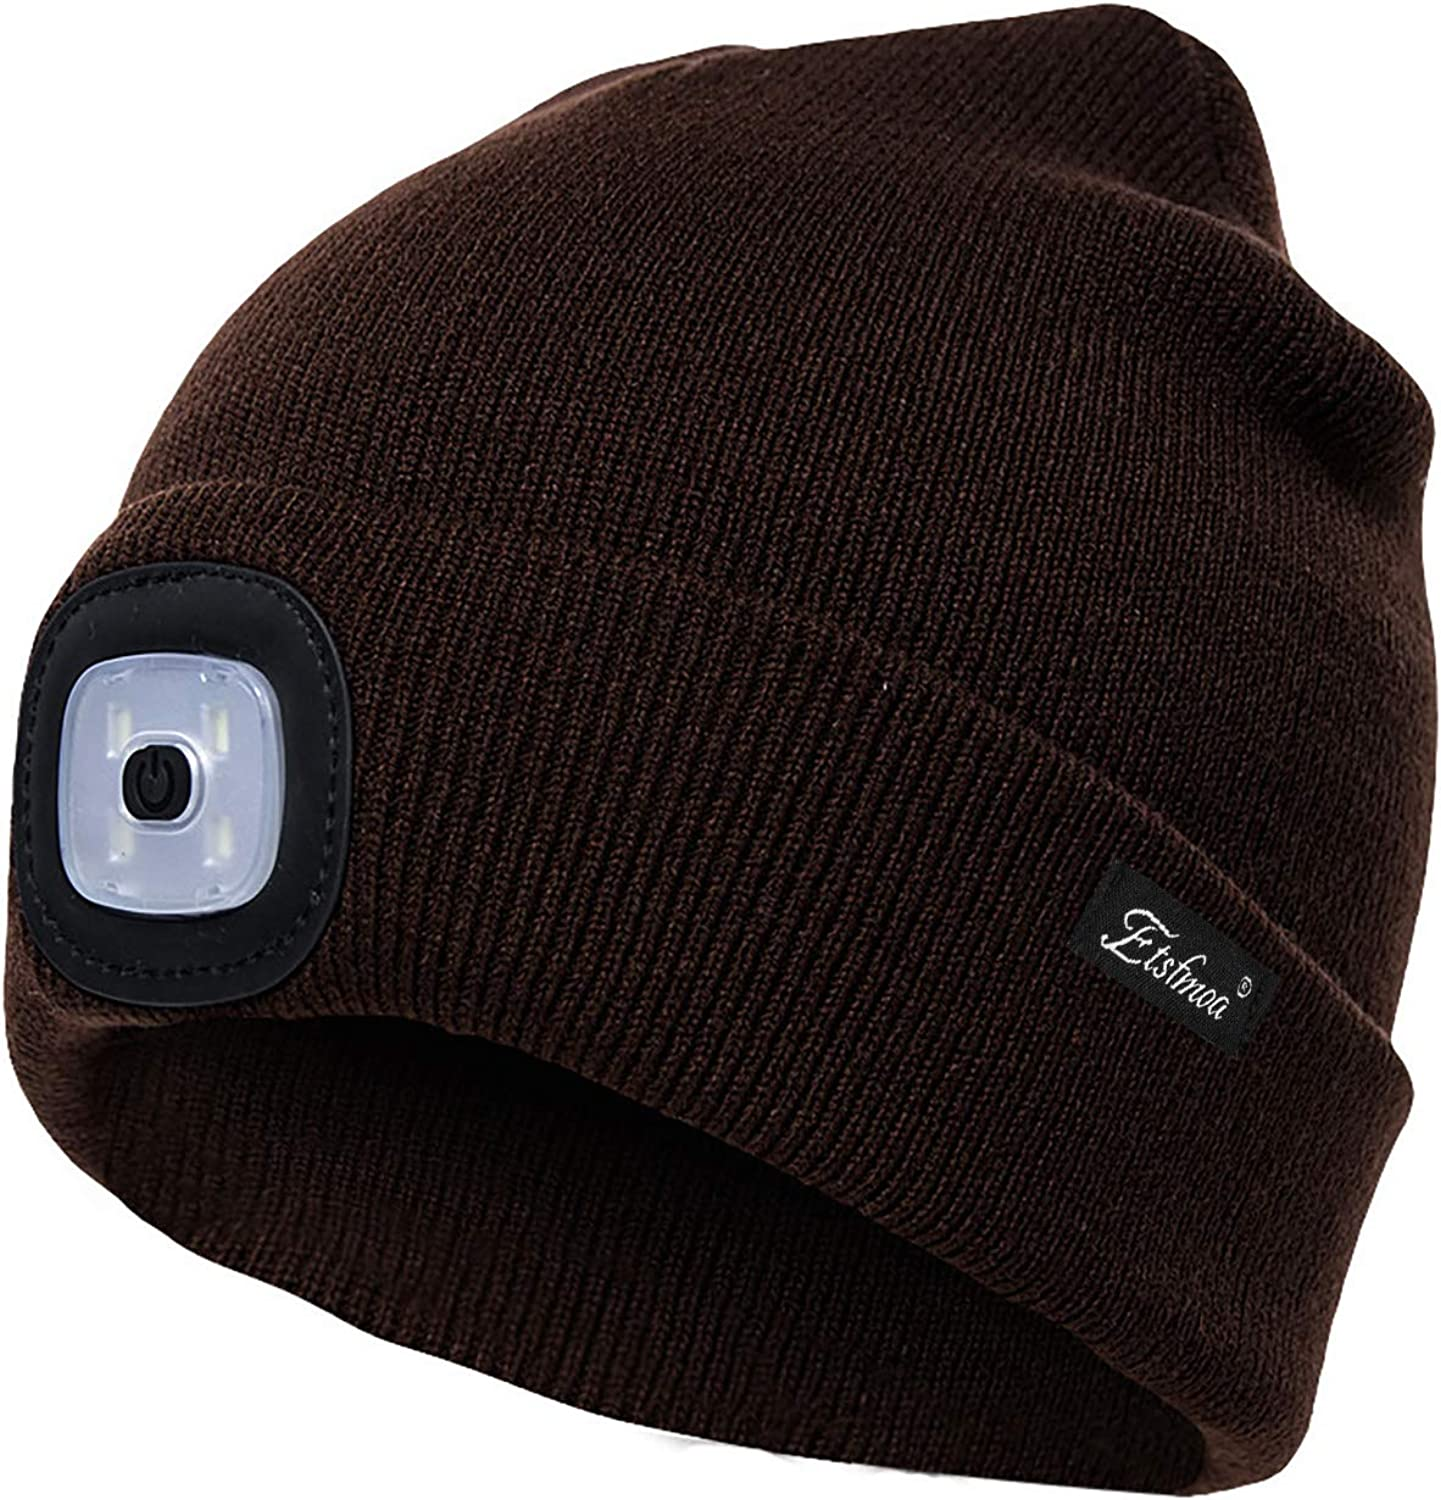 Unisex LED Beanie Hat with Light Gifts for Men Dad Father USB Rechargeable Caps